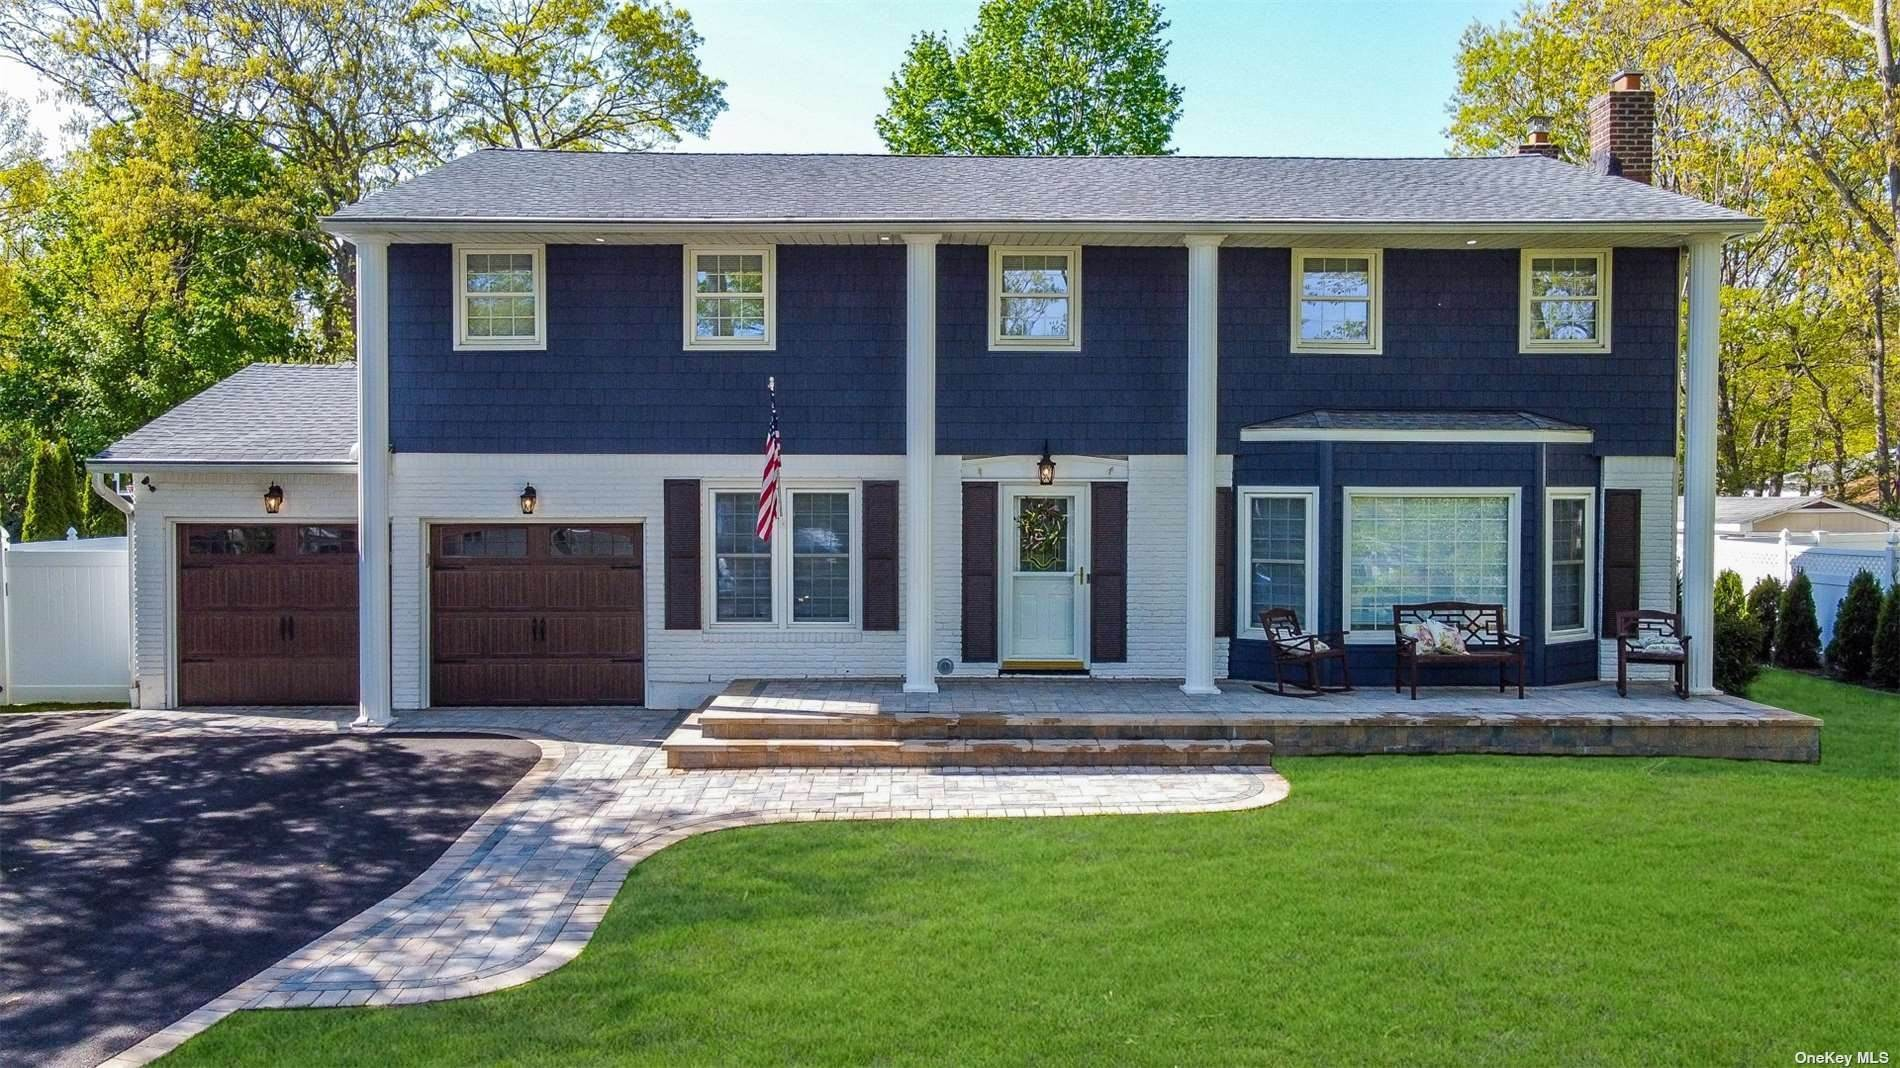 Residential for Sale at 6 Wichard Boulevard Commack, New York 11725 United States